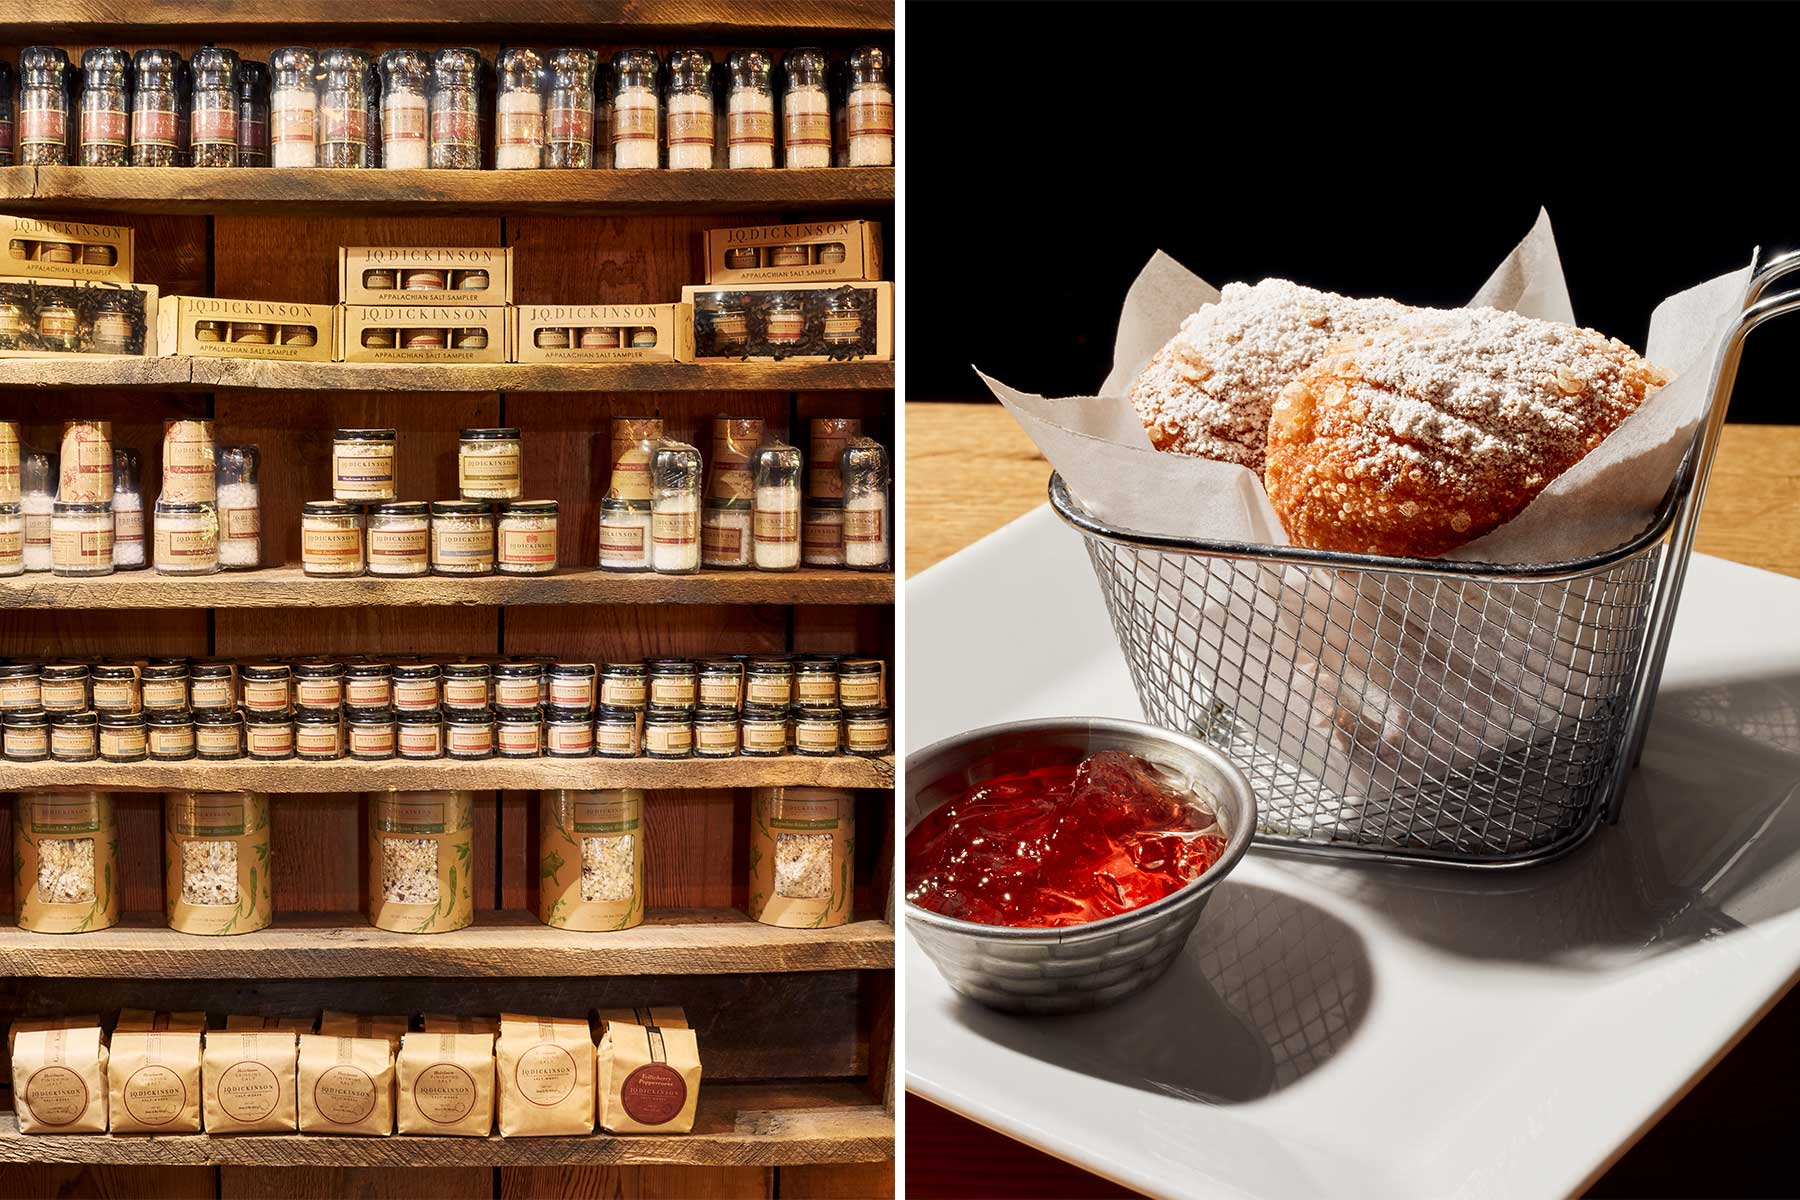 Scenes from Appalachian West Virginia, including detail of salt-based products on a store shelf, and beignets in a wire basket with a side of jelly